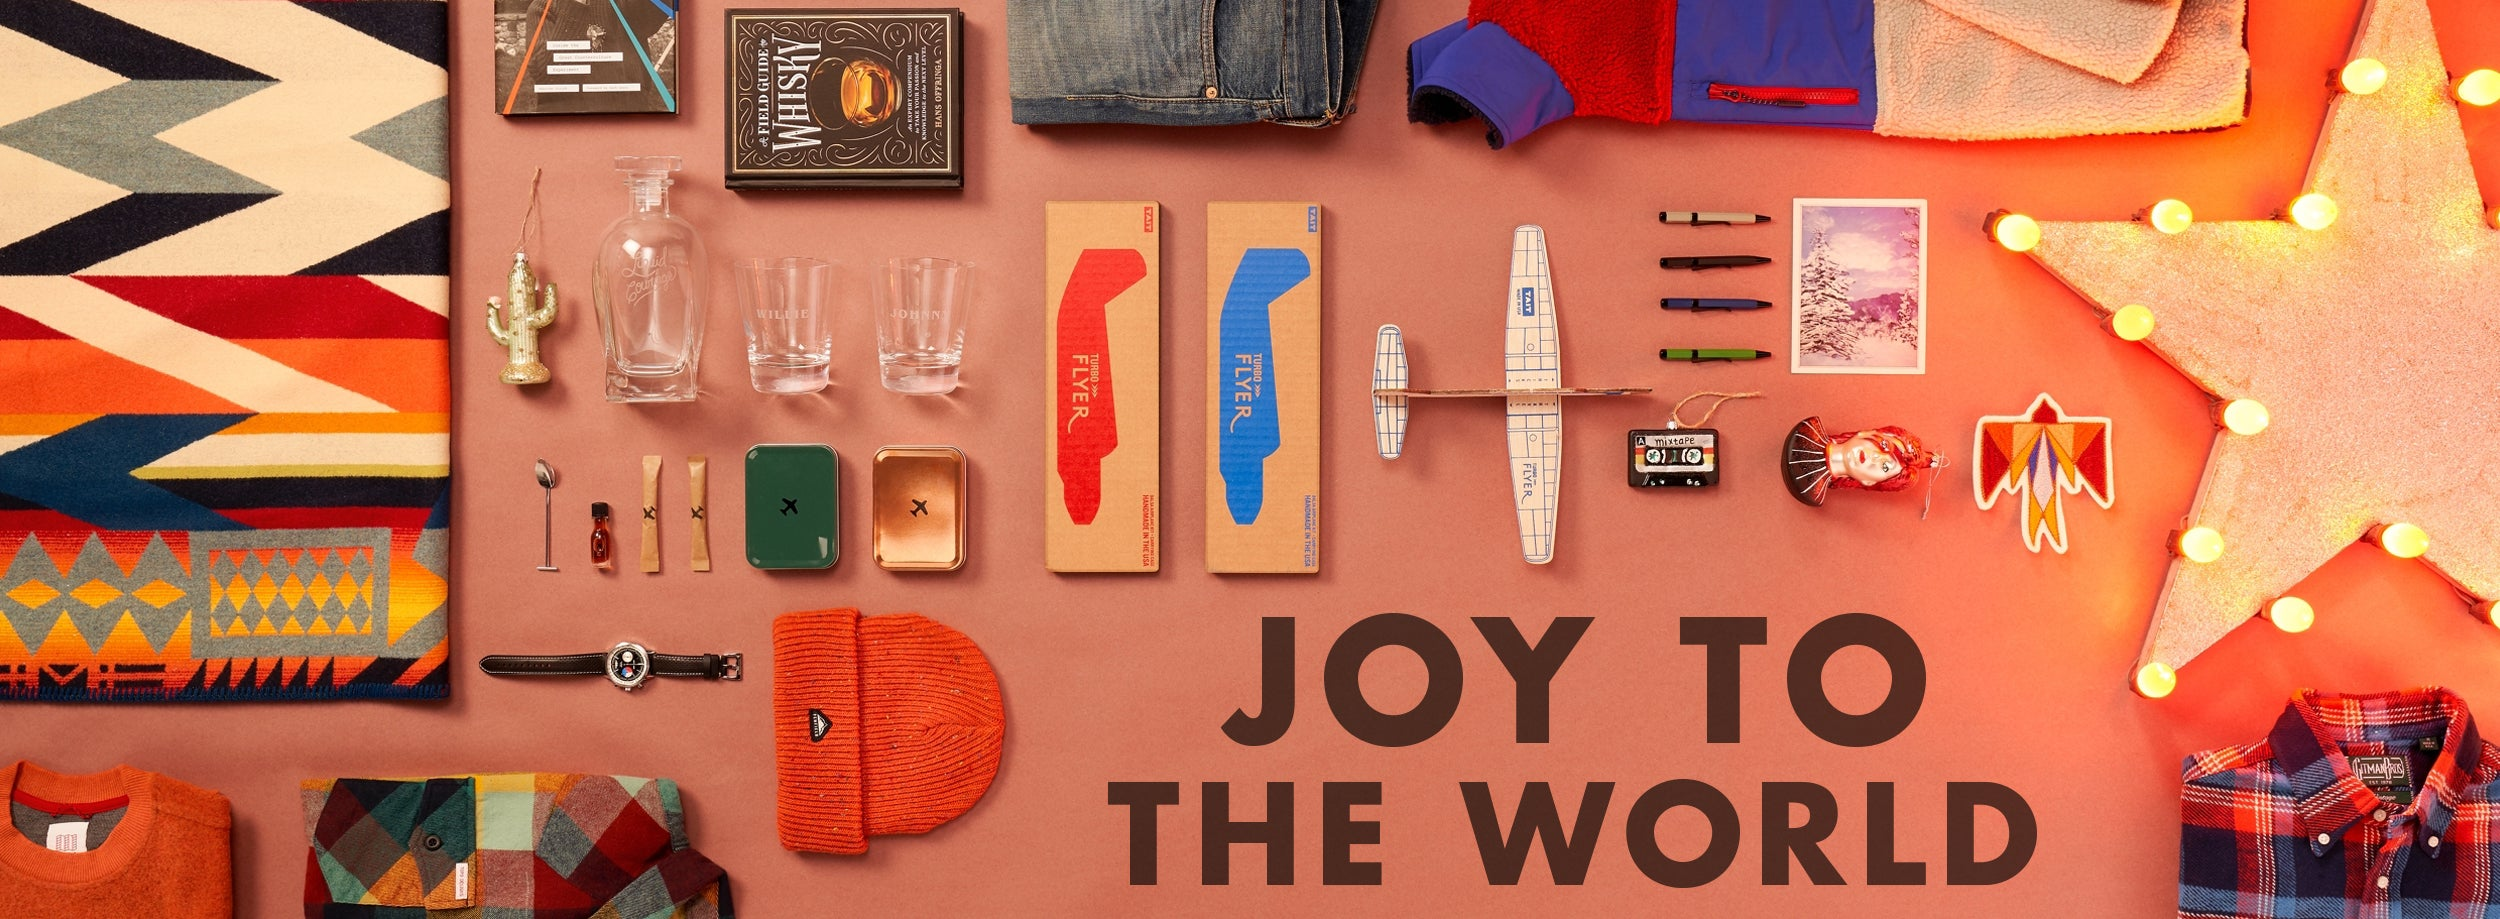 Holiday Gift Guide - Joy to the World